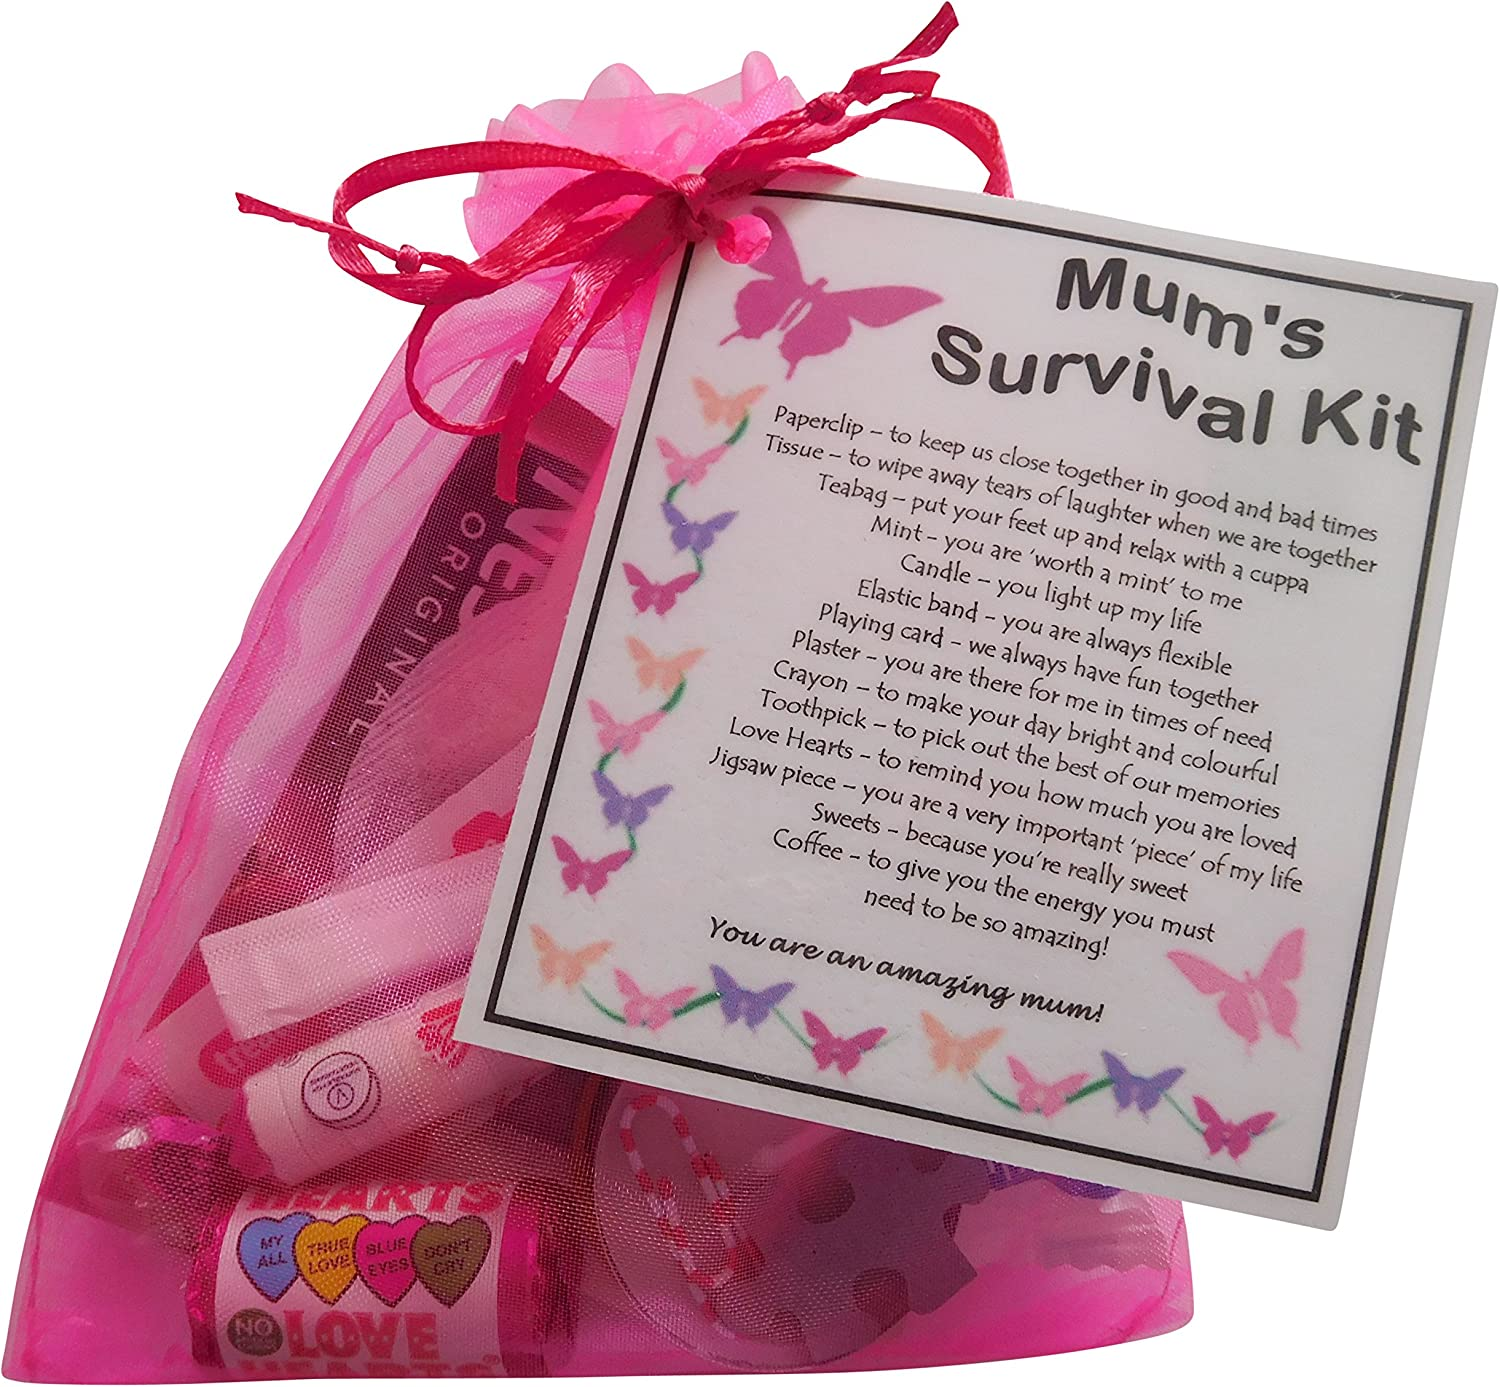 Mum S Survival Kit Mum S Birthday Mum Christmas Mother S Day Or Just Because Mum Gift Gift For Mum Gifts Mother Gift For Mothers Gifts Mum Present Amazon Co Uk Office Products